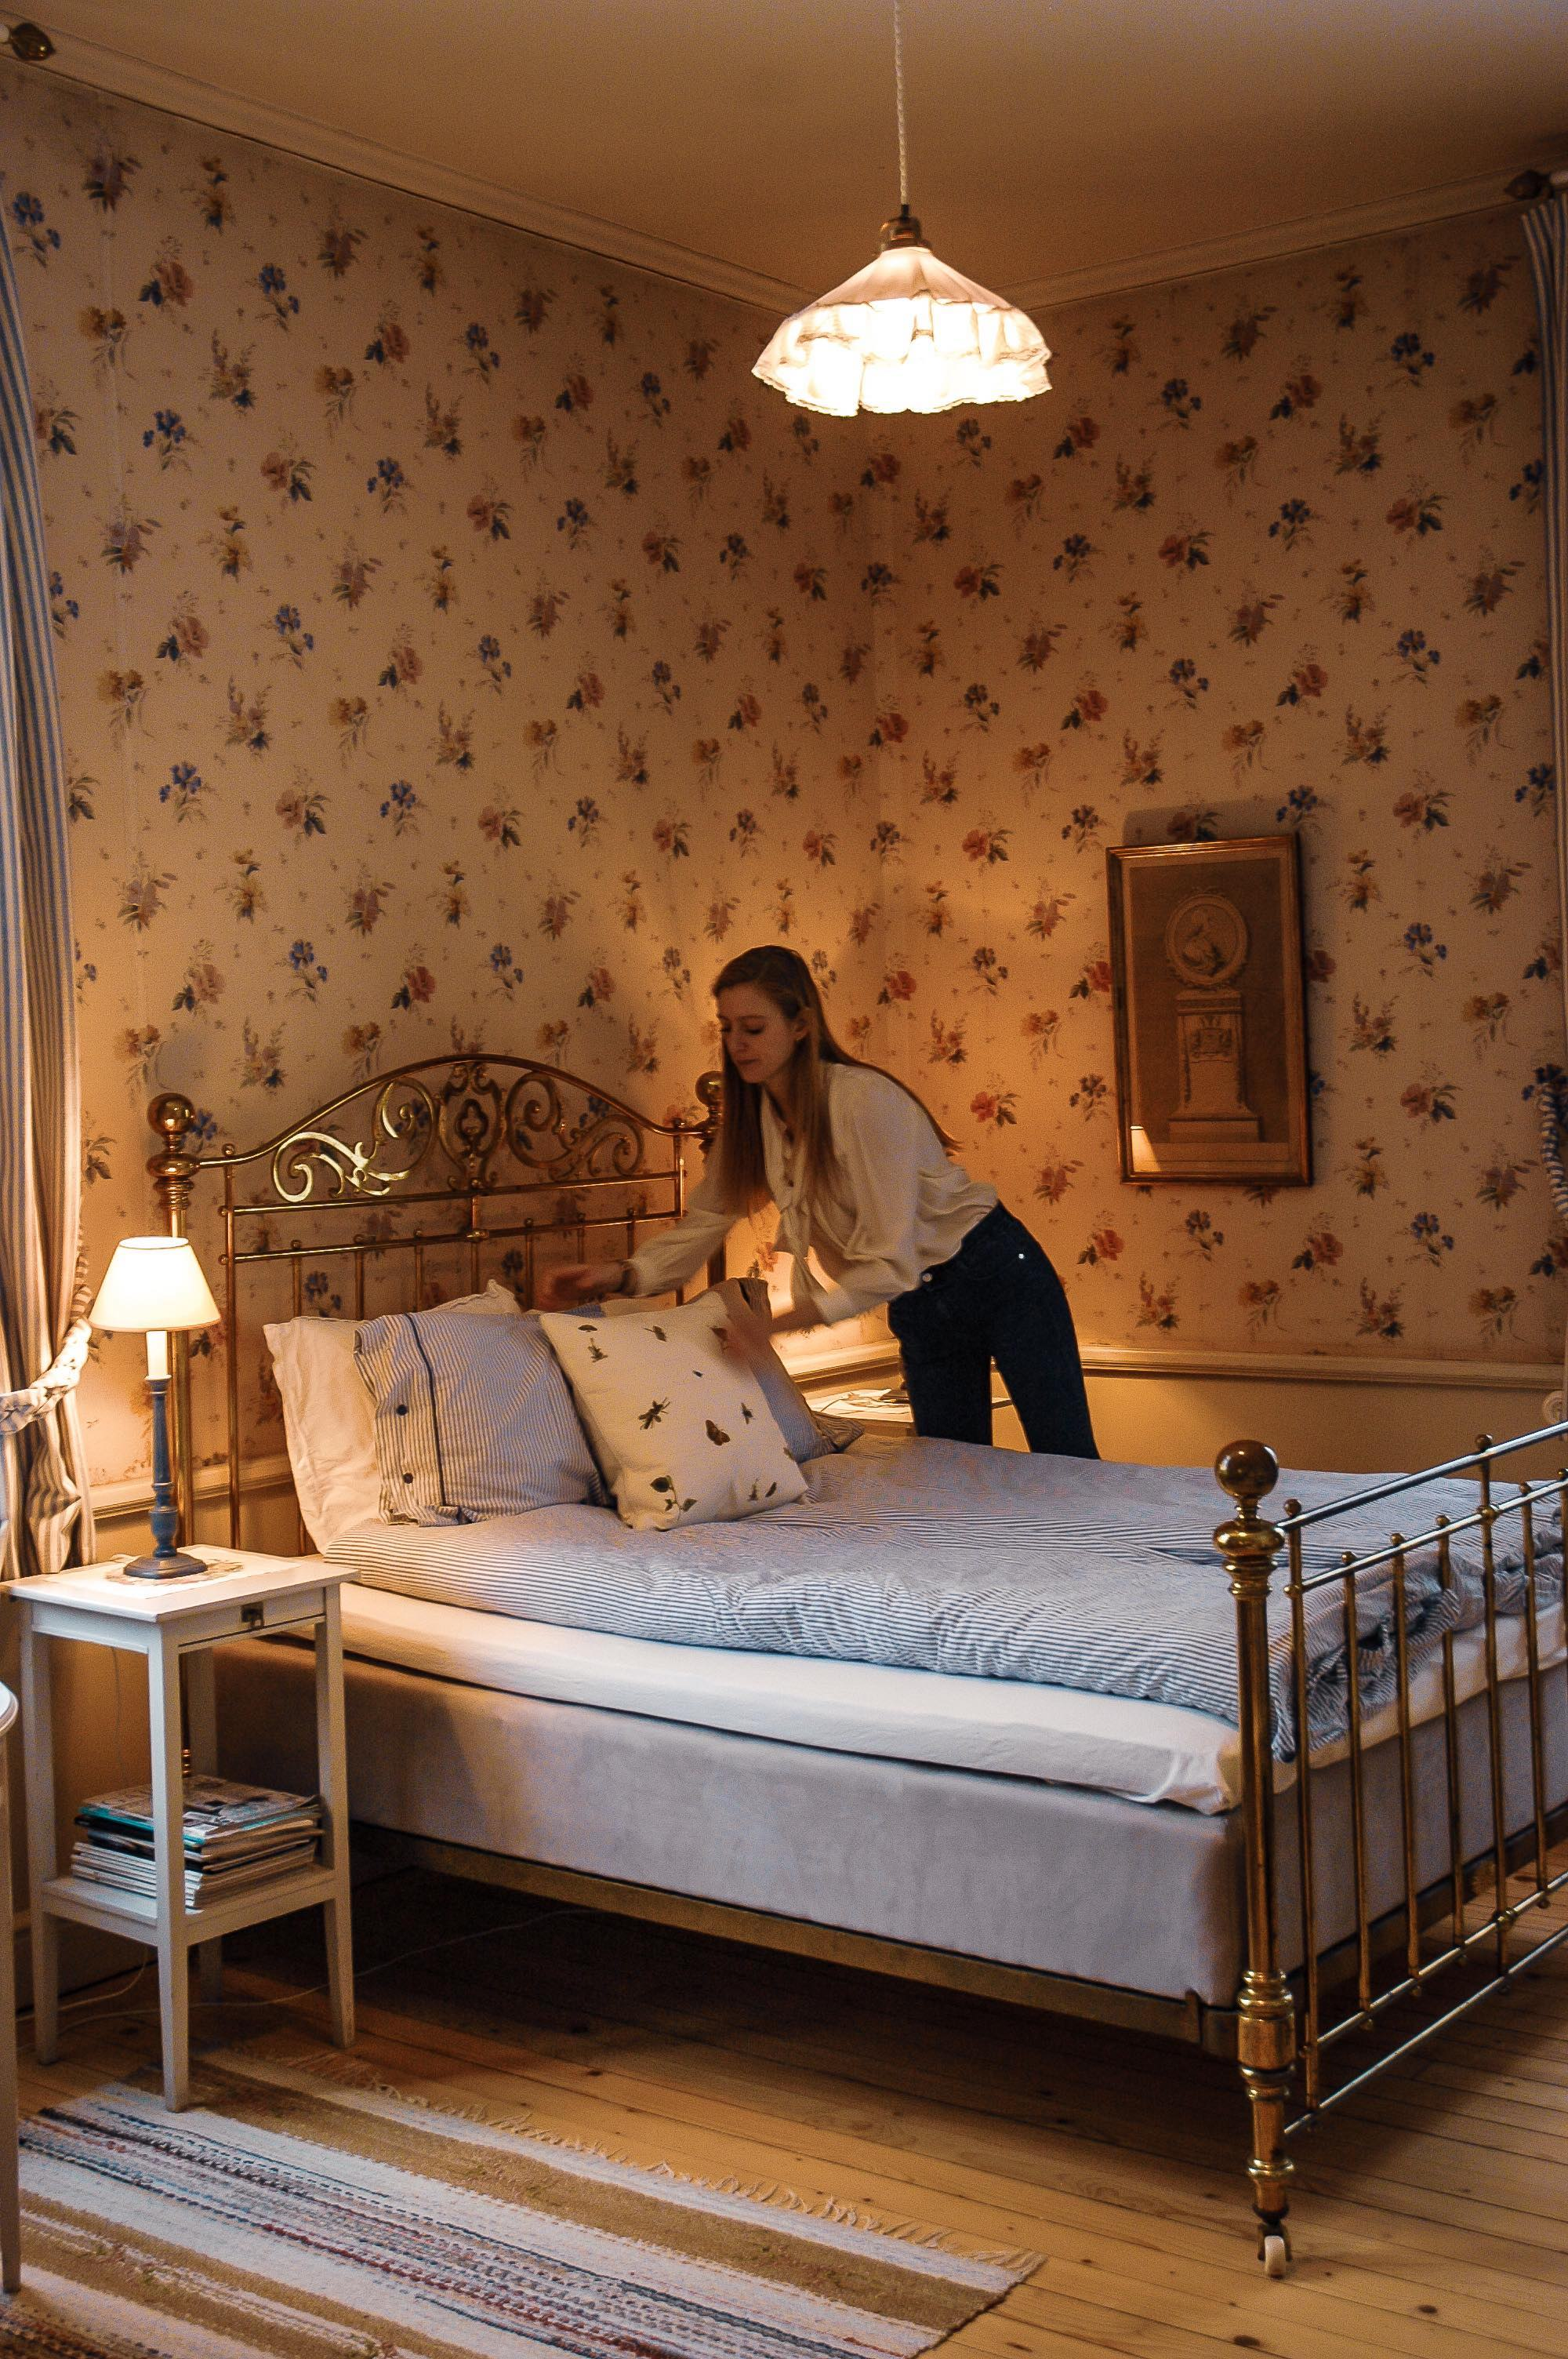 All of our rooms are of very high standard, furnished with antiques furniture and all with their own unique theme